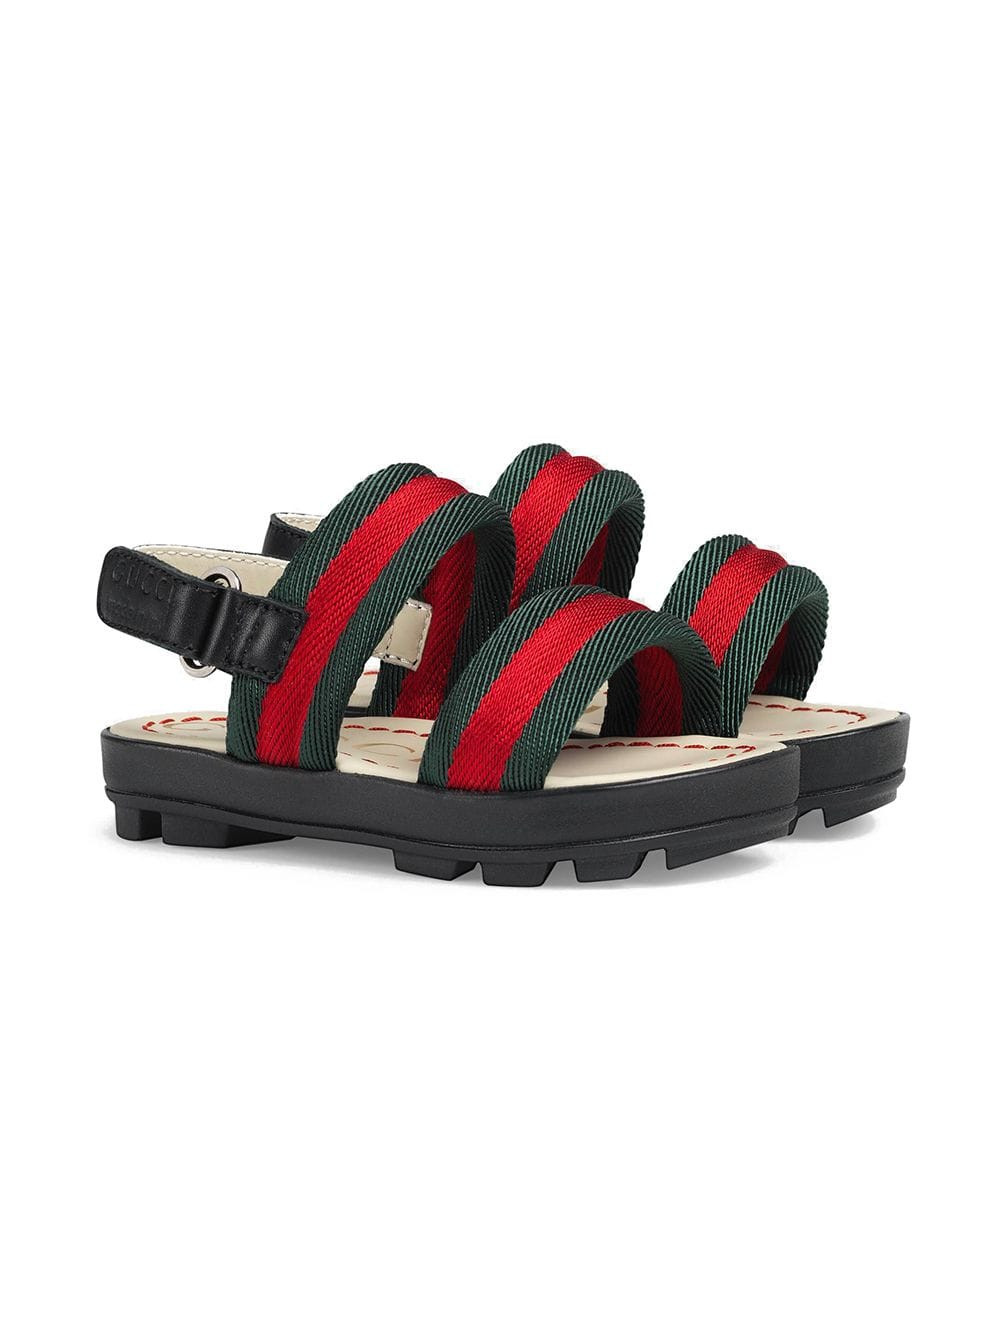 63336617d Gucci Kids Toddler leather and Web sandals - Black in 2019 ...